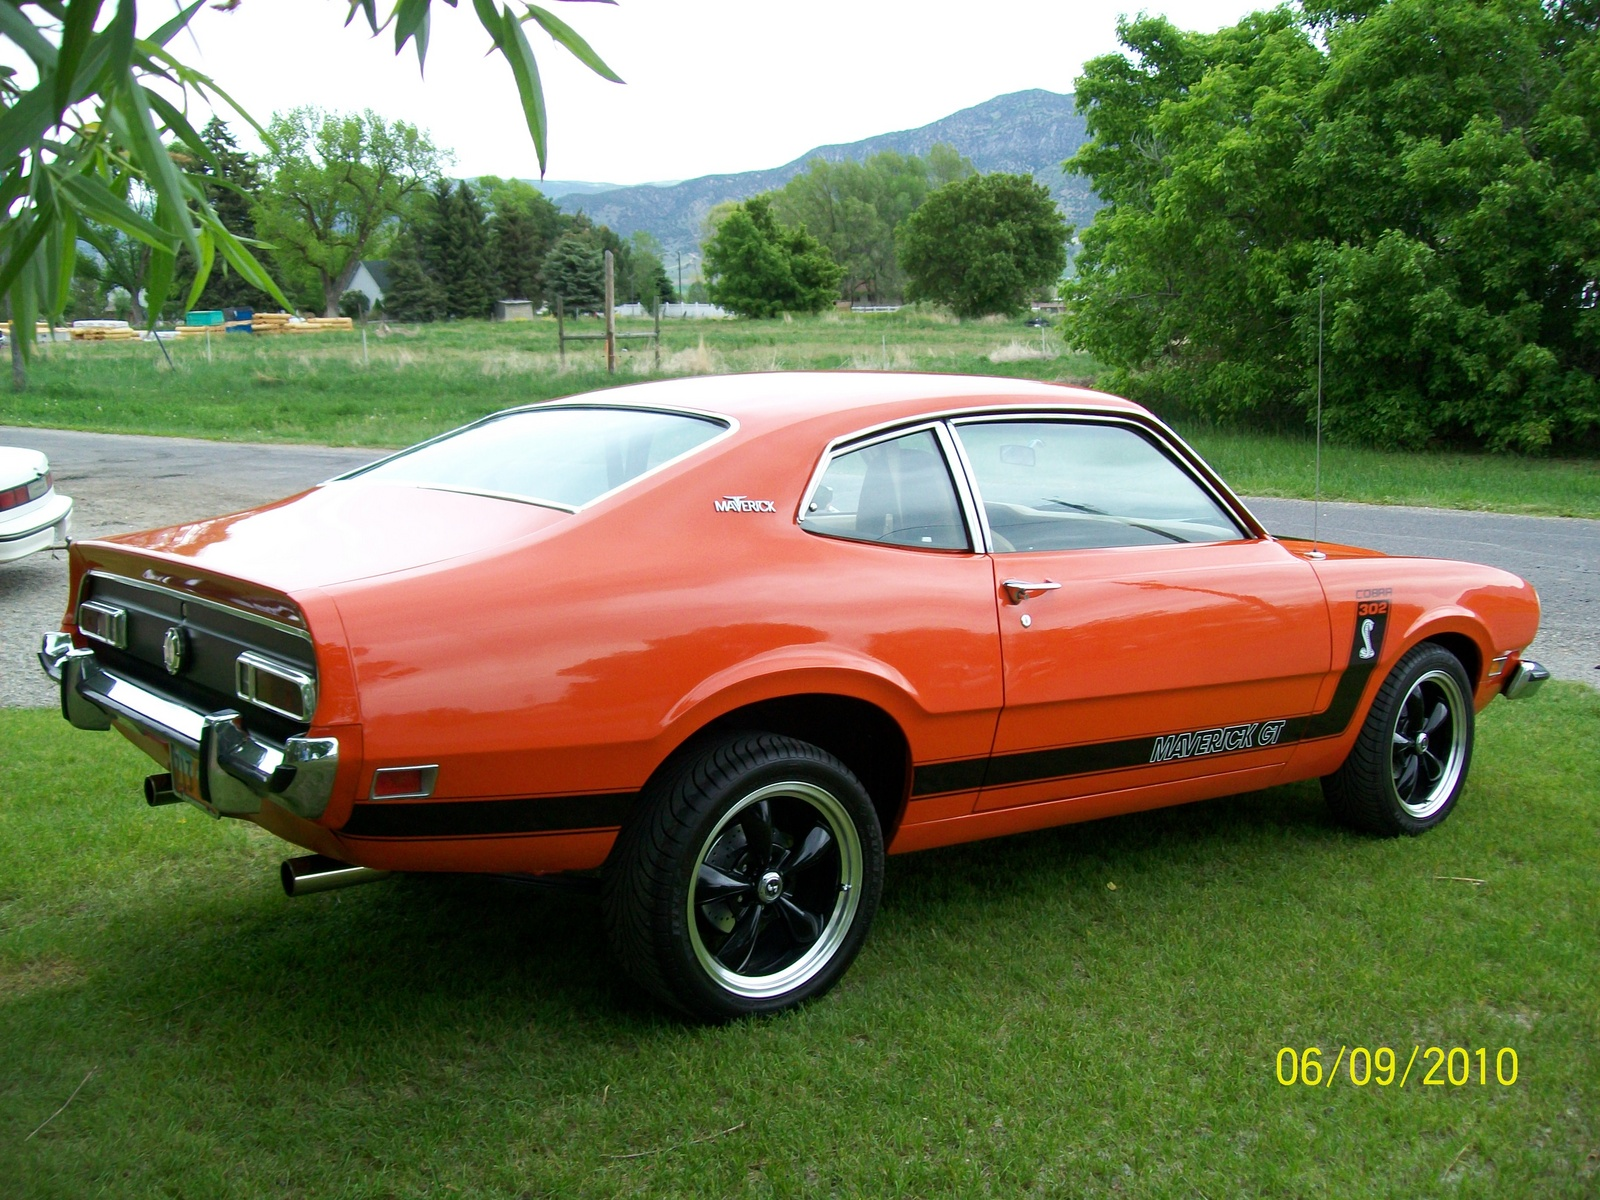 1973 Ford Maverick picture